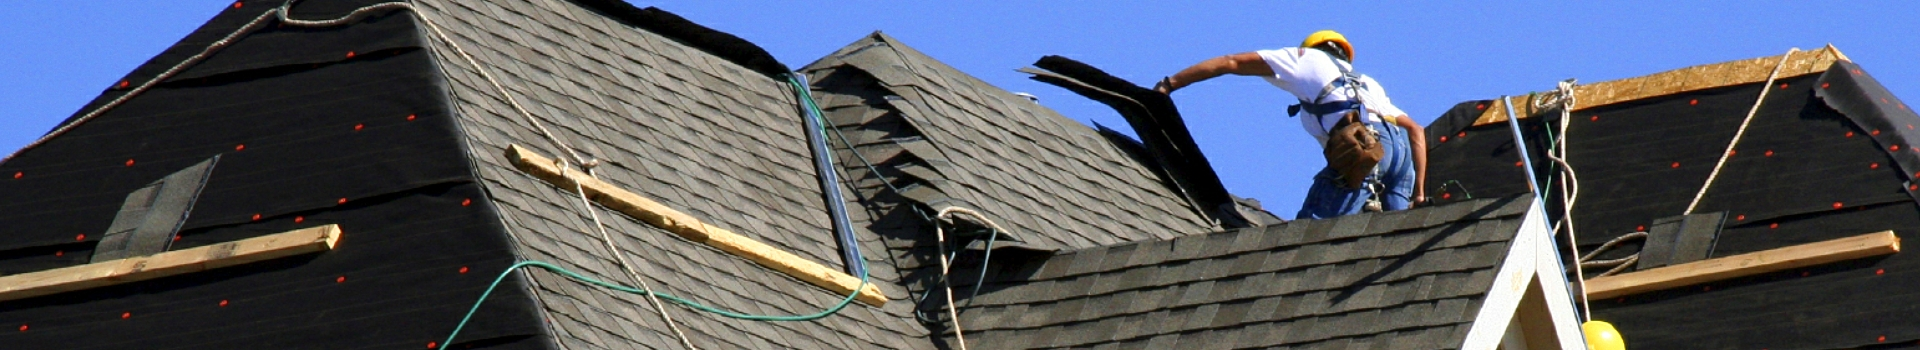 roofing-services-tolleson-arizona